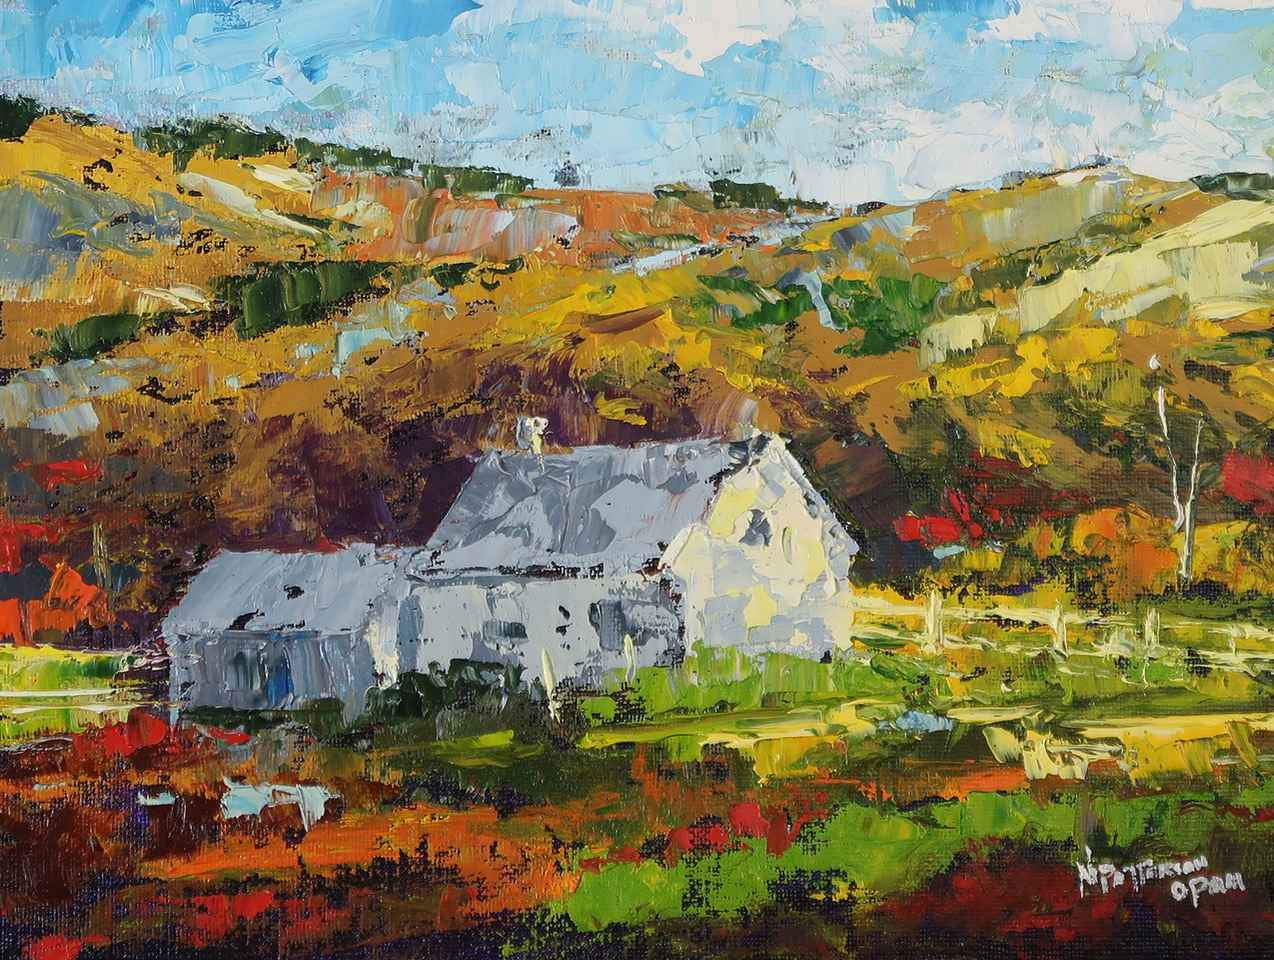 Hill Country by  Neil Patterson - Masterpiece Online